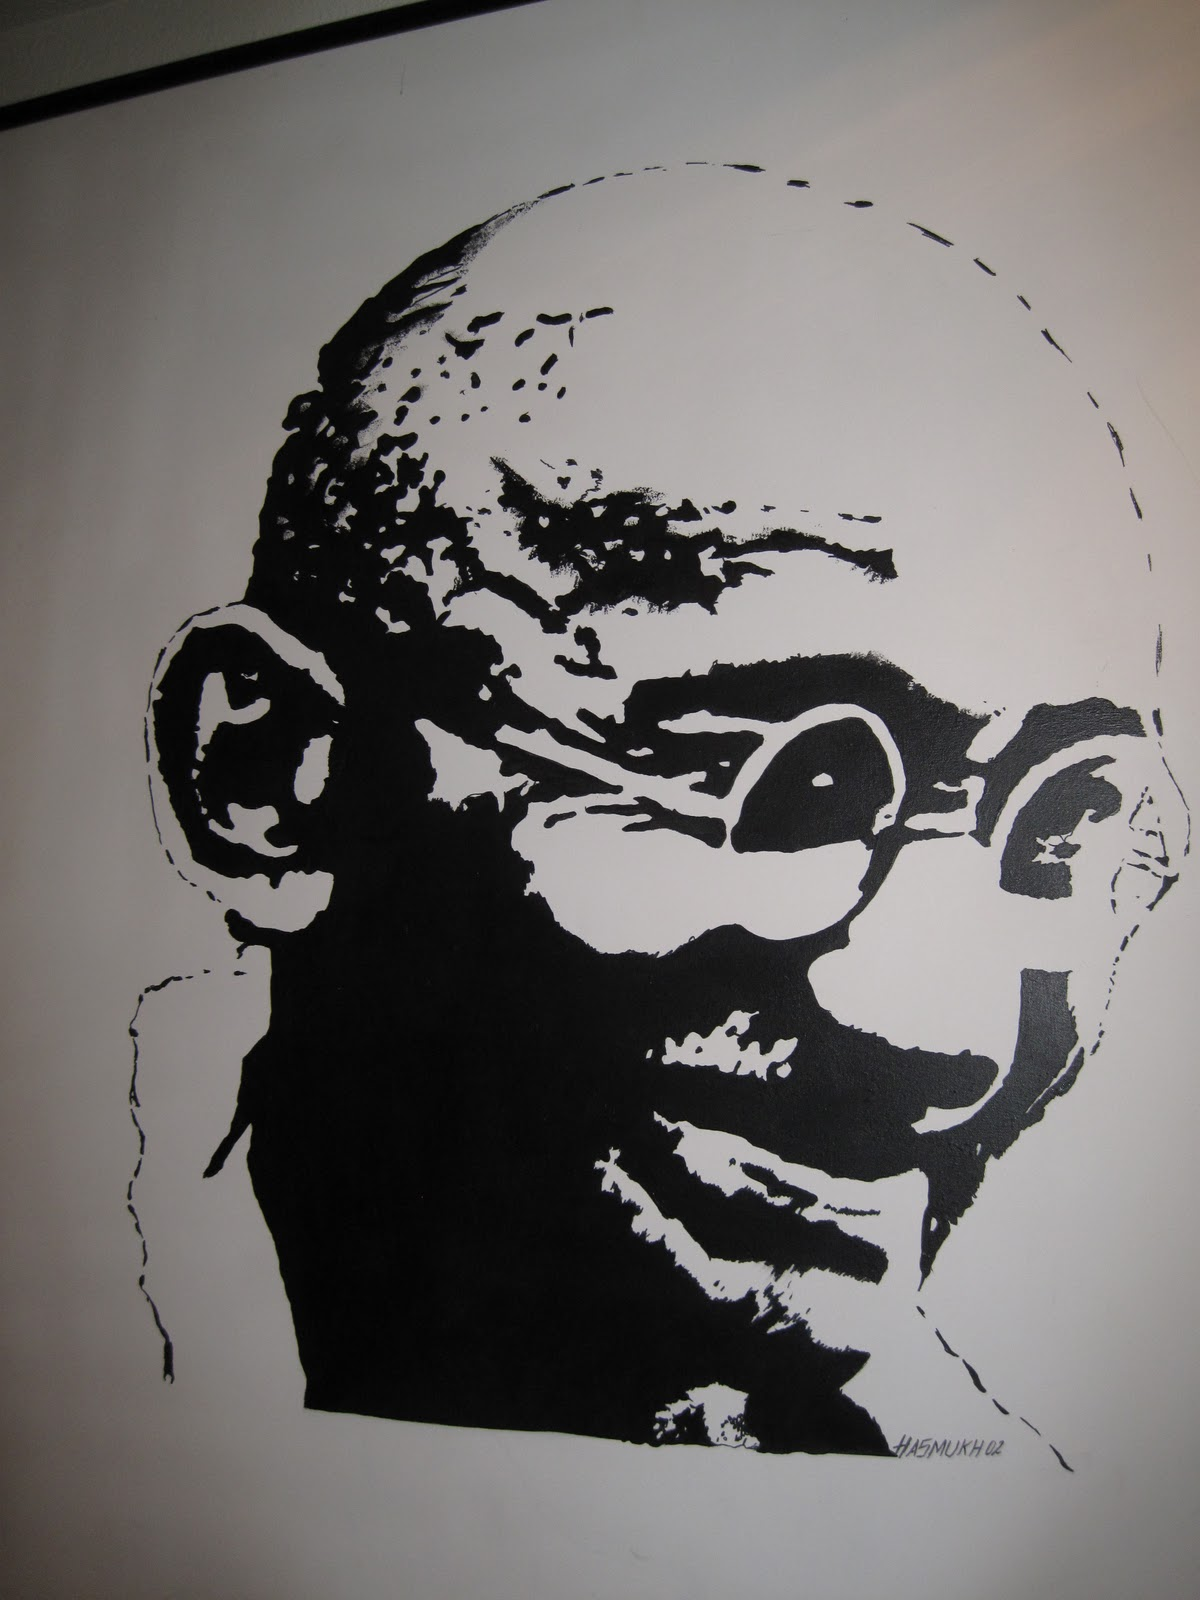 life and contribution of gandhi all over the world especially in india Gandhi: the ideals of satyagraha and ahimsa  respect all life gandhi never could clearly  impact and aftermath of the world wars especially the second in.